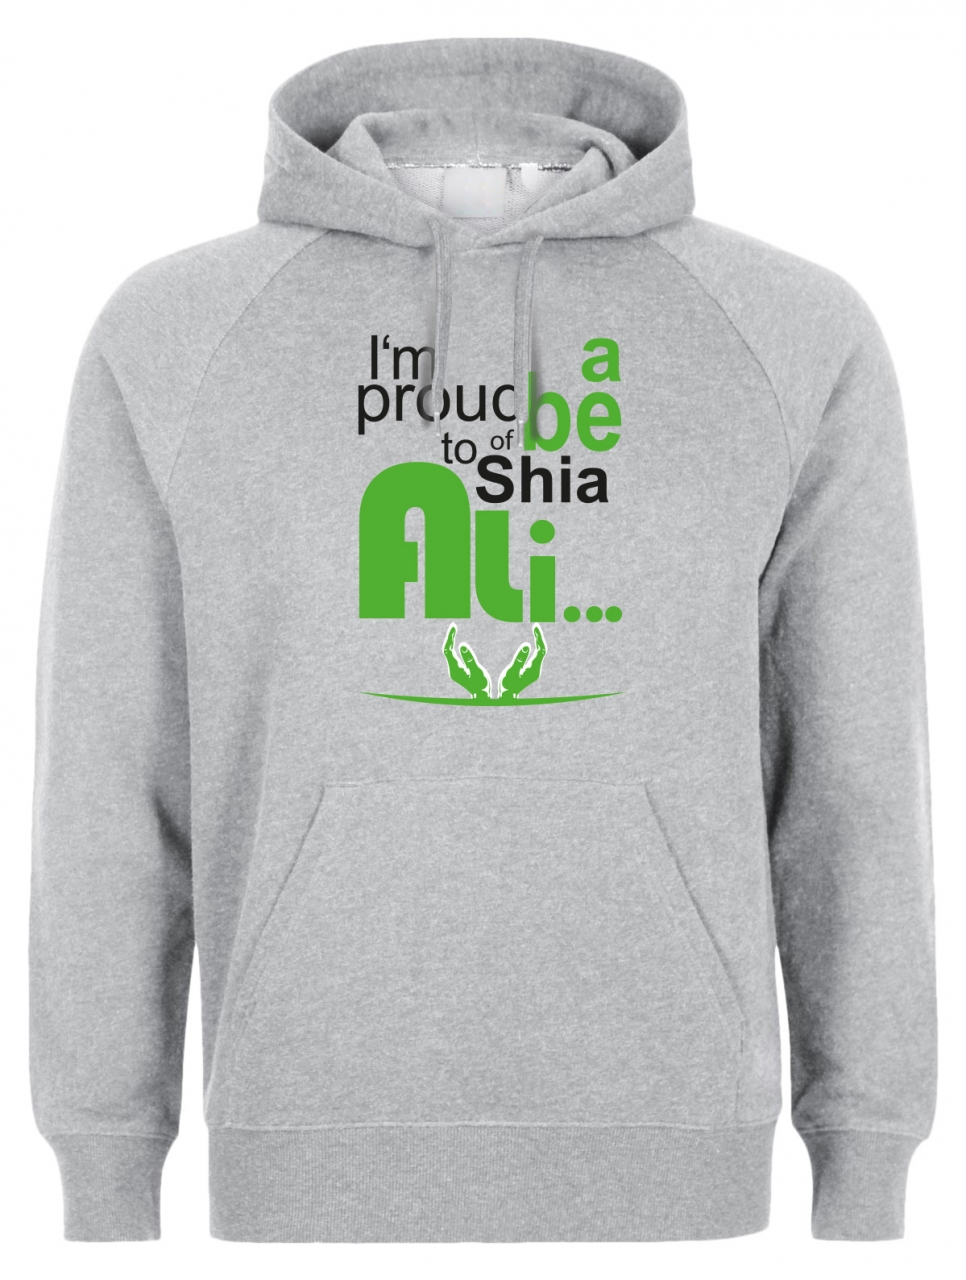 I am proud to be a shia of Ali Shia Herren Hoodie